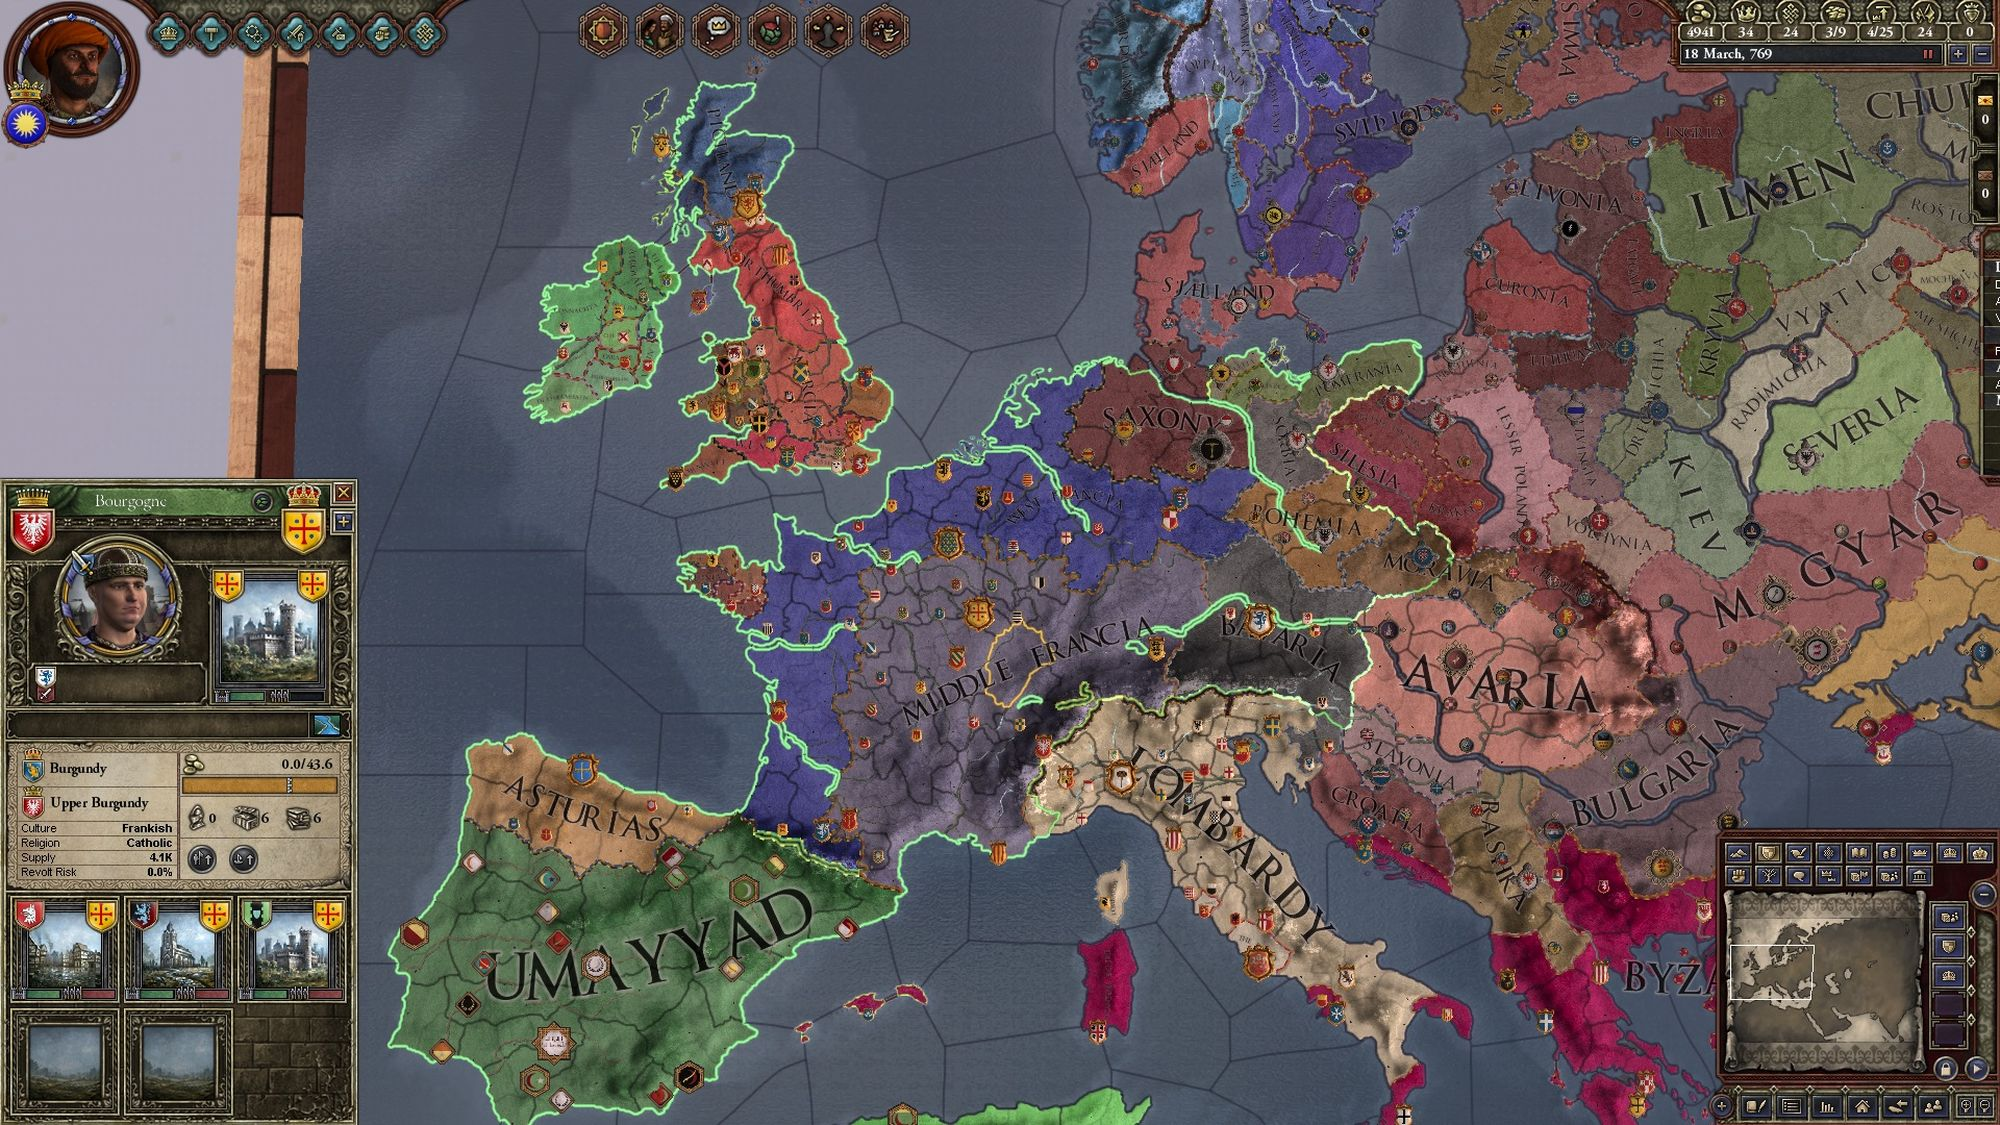 Crusader kings 3 may enter pre production soon gamewatcher crusader kings 3 may be entering pre production soon publicscrutiny Image collections